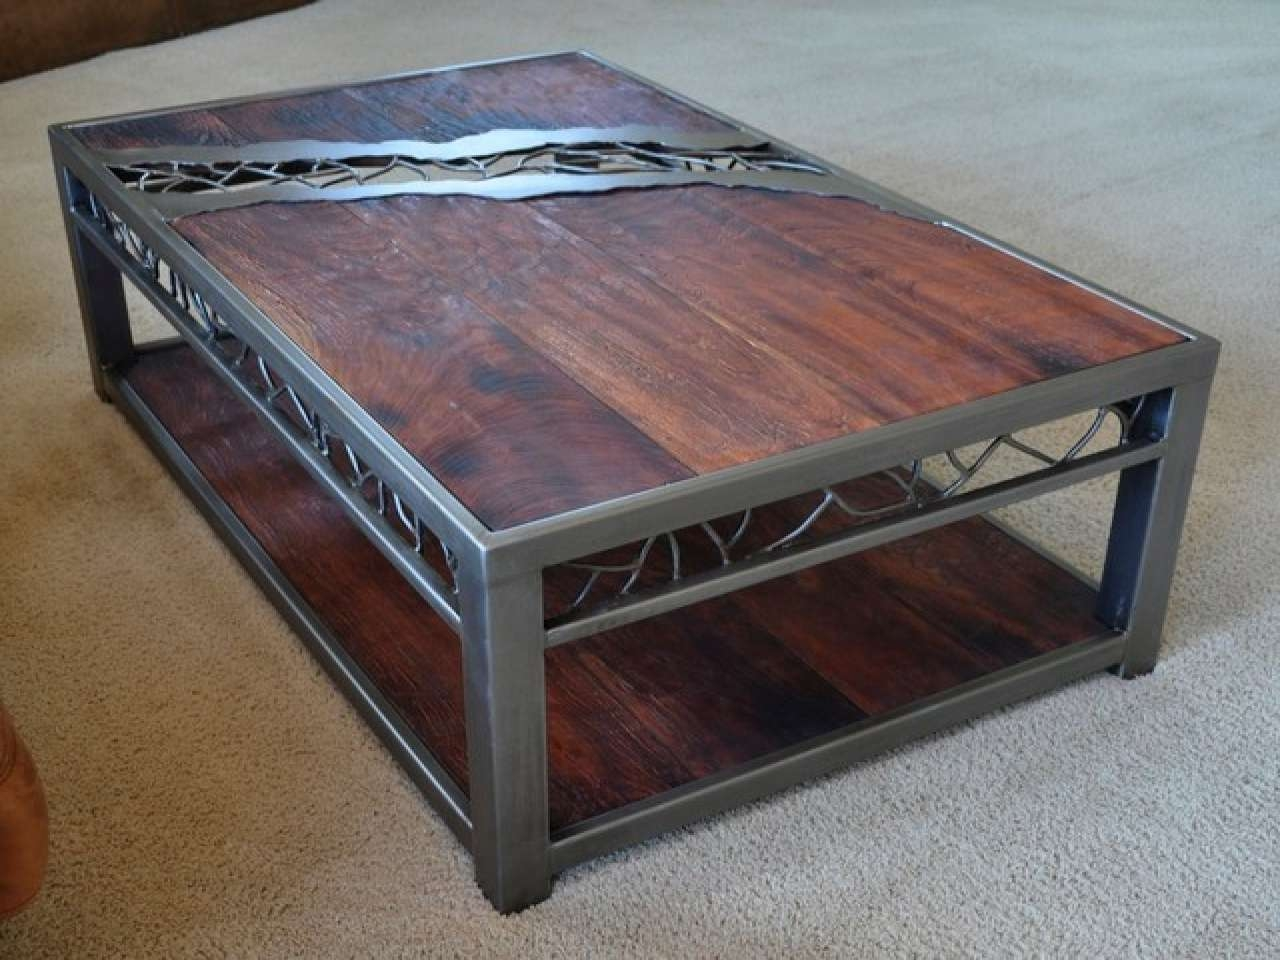 2017 Stylish Coffee Tables Within Metal Coffee Table Design Possibilities With Stylish Appeal (View 1 of 20)